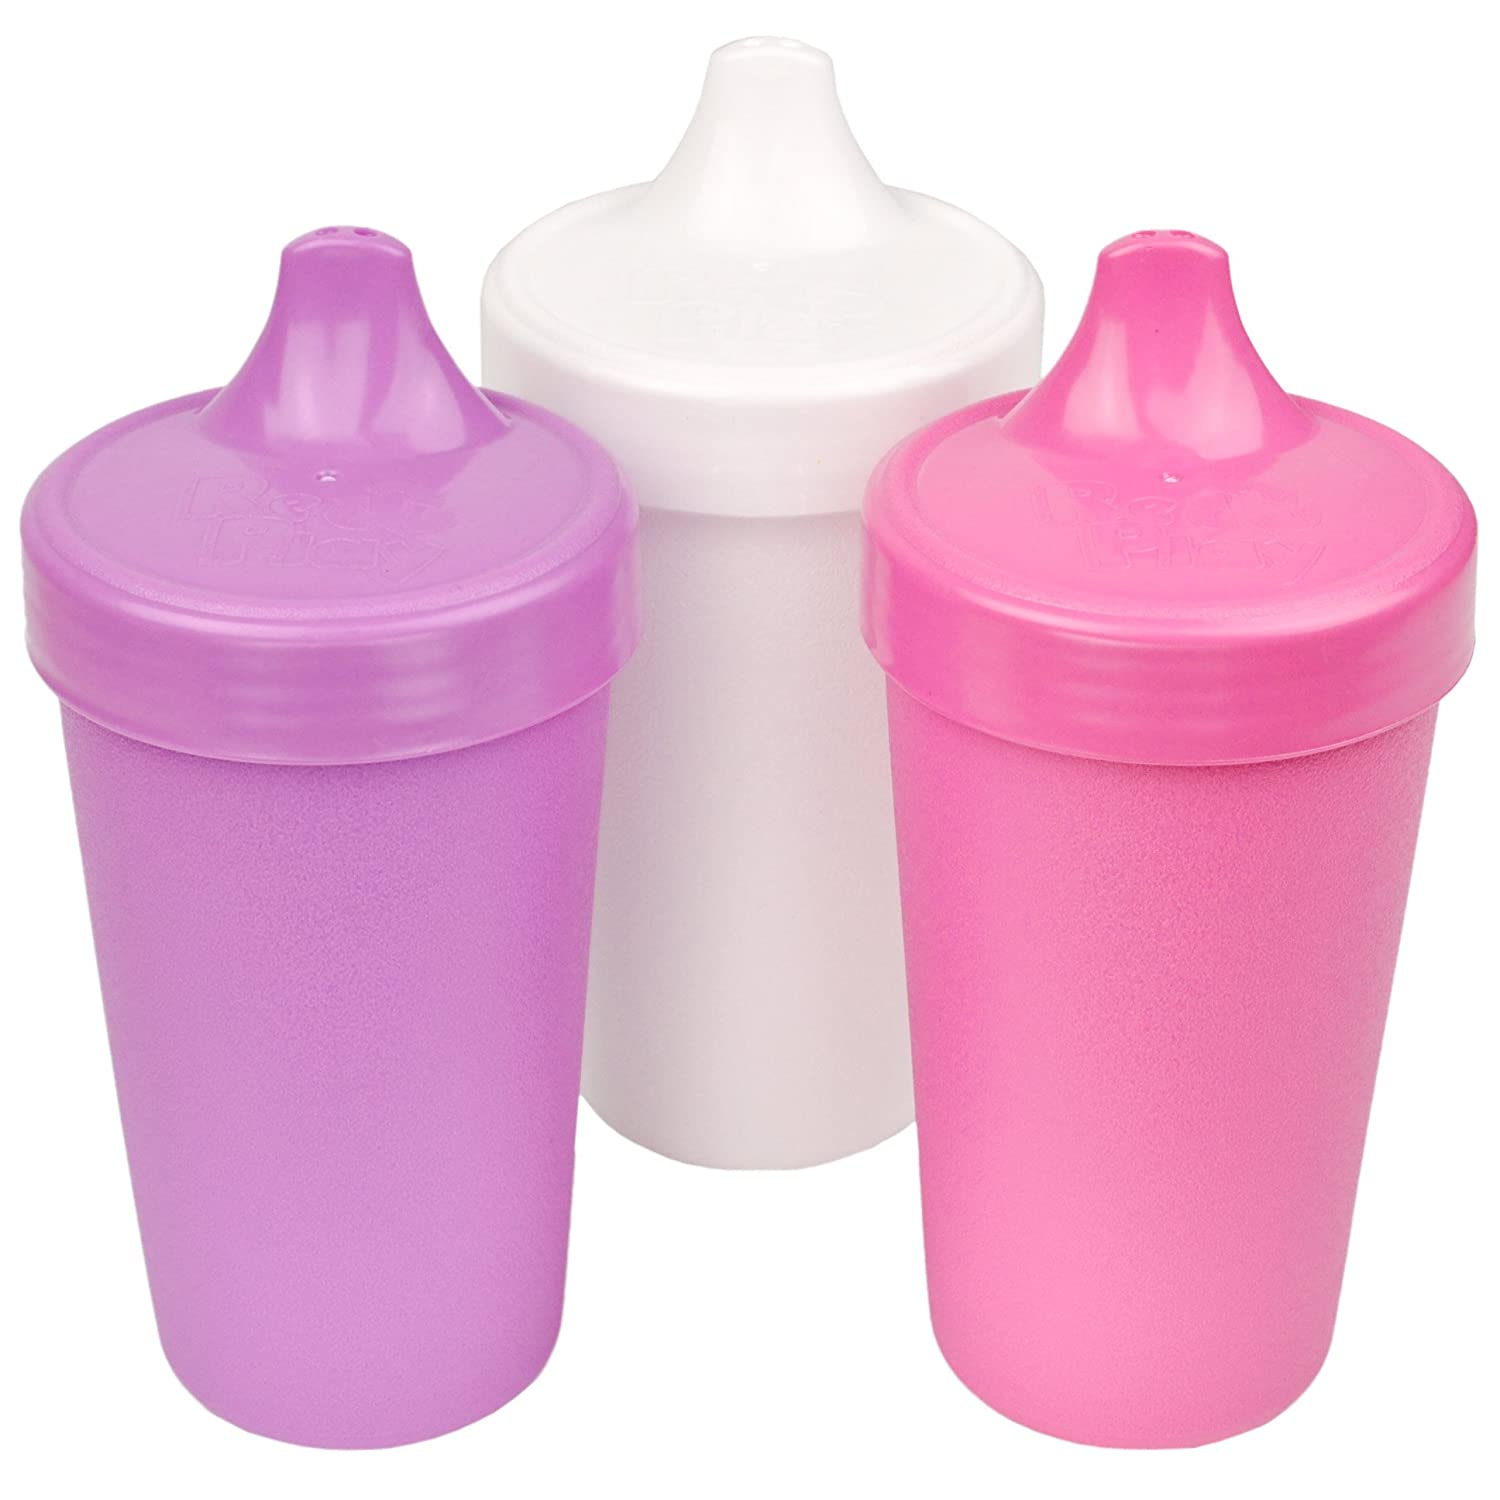 RE-PLAY No Spill Sippy Cups